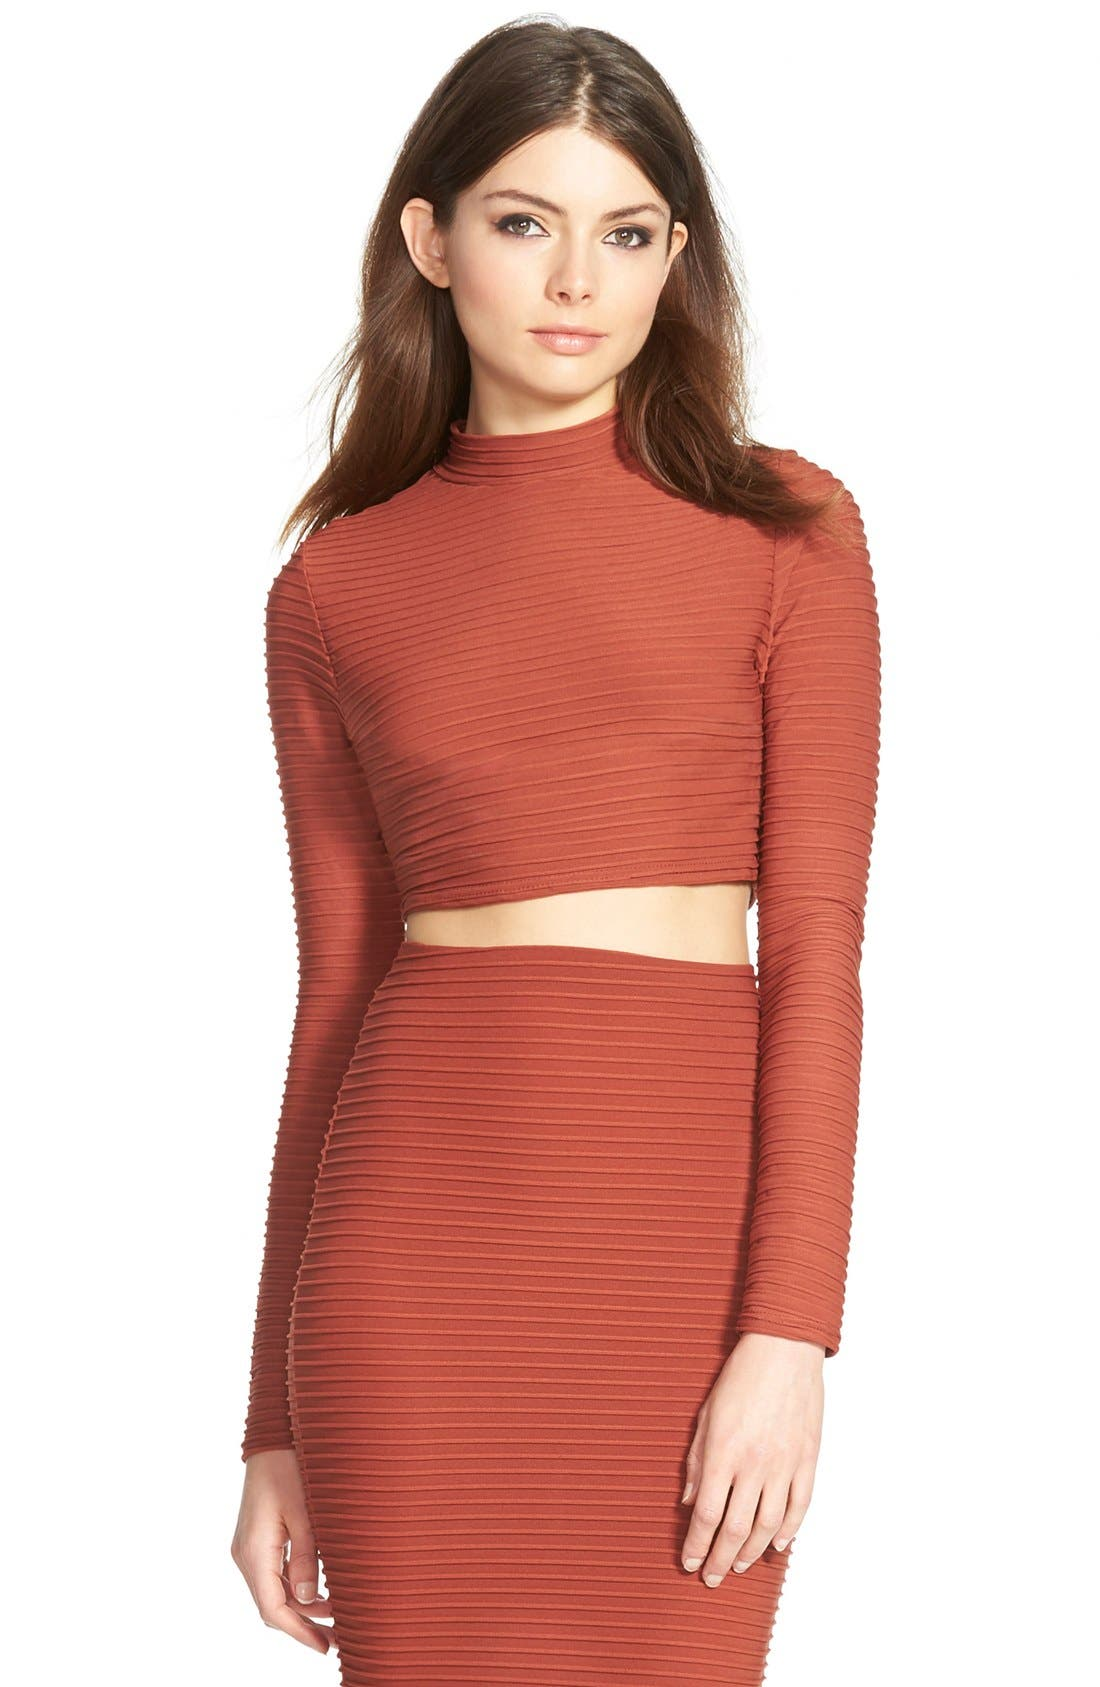 Alternate Image 1 Selected - Missguided Textured Long Sleeve Crop Top